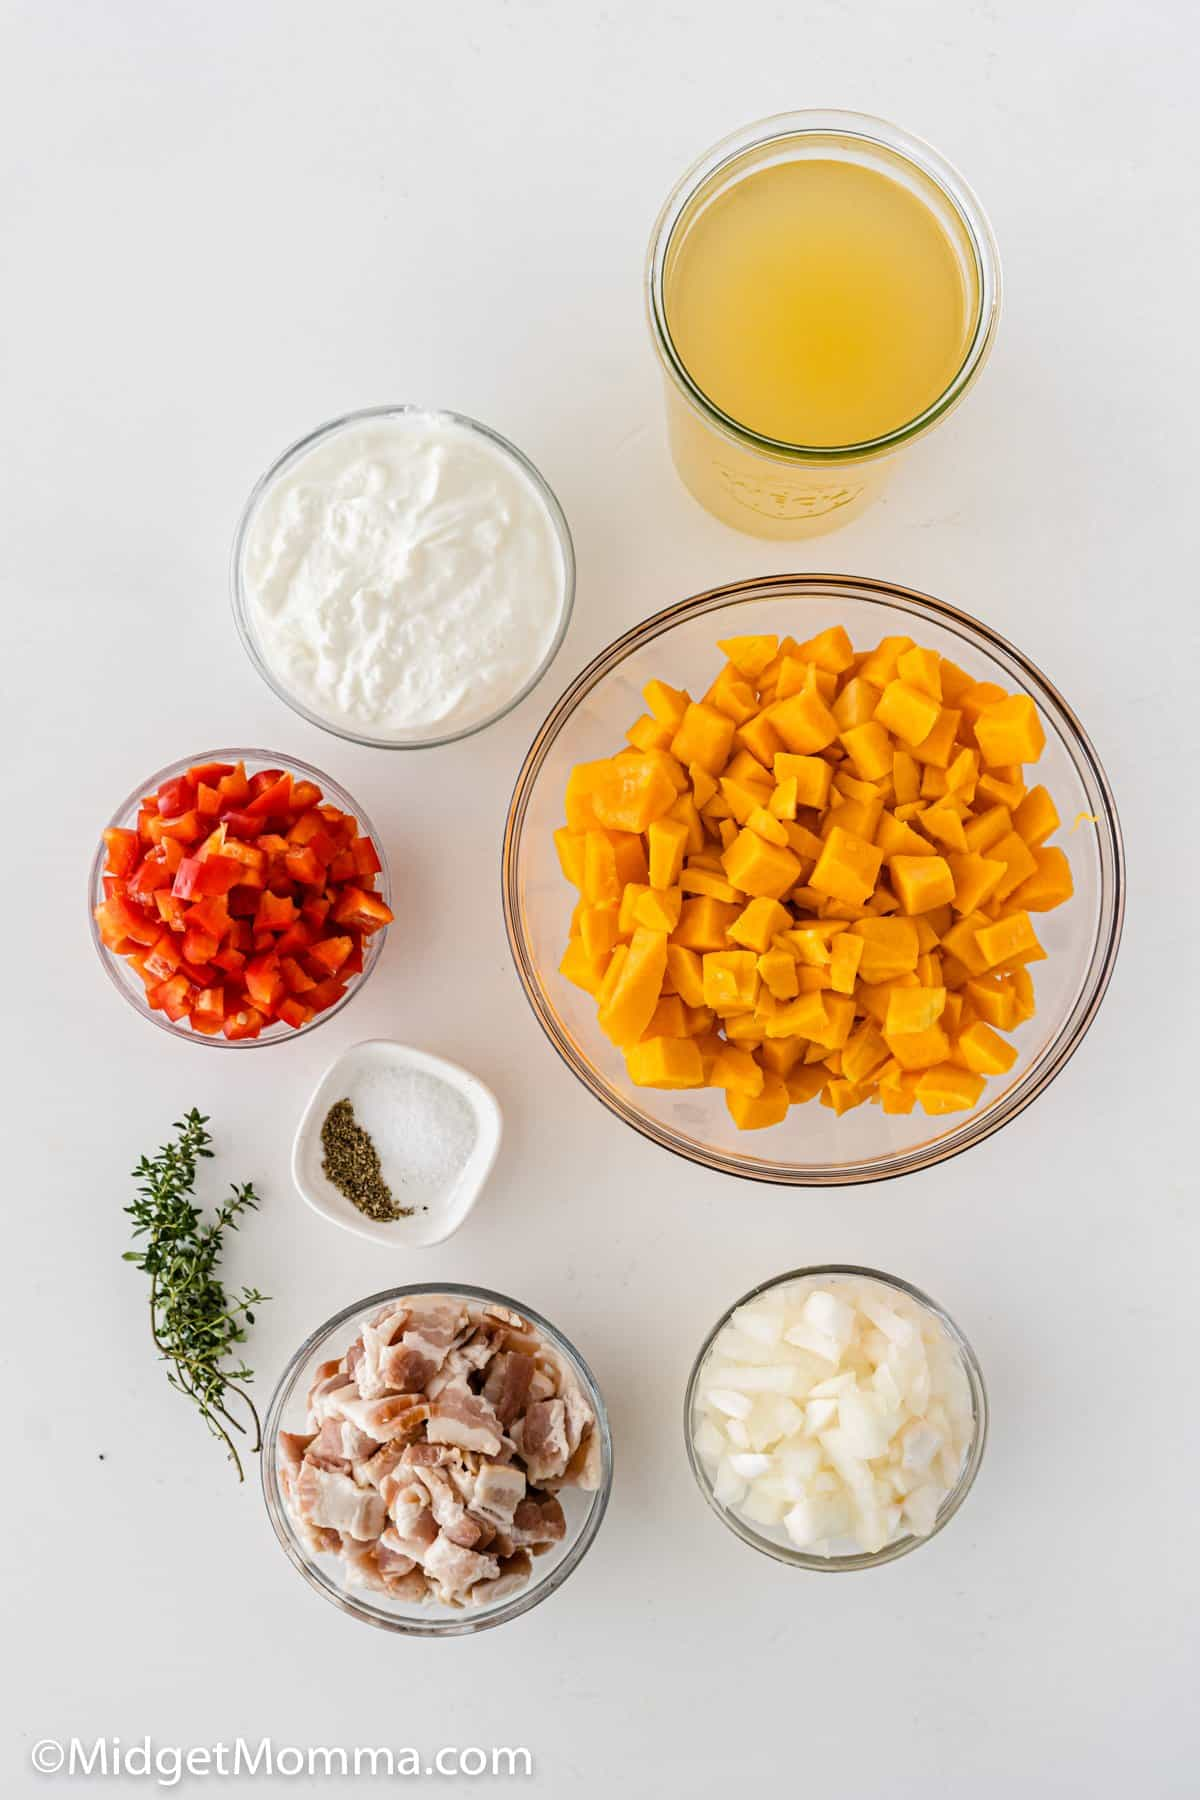 Roasted butternut squash soup recipe ingredients